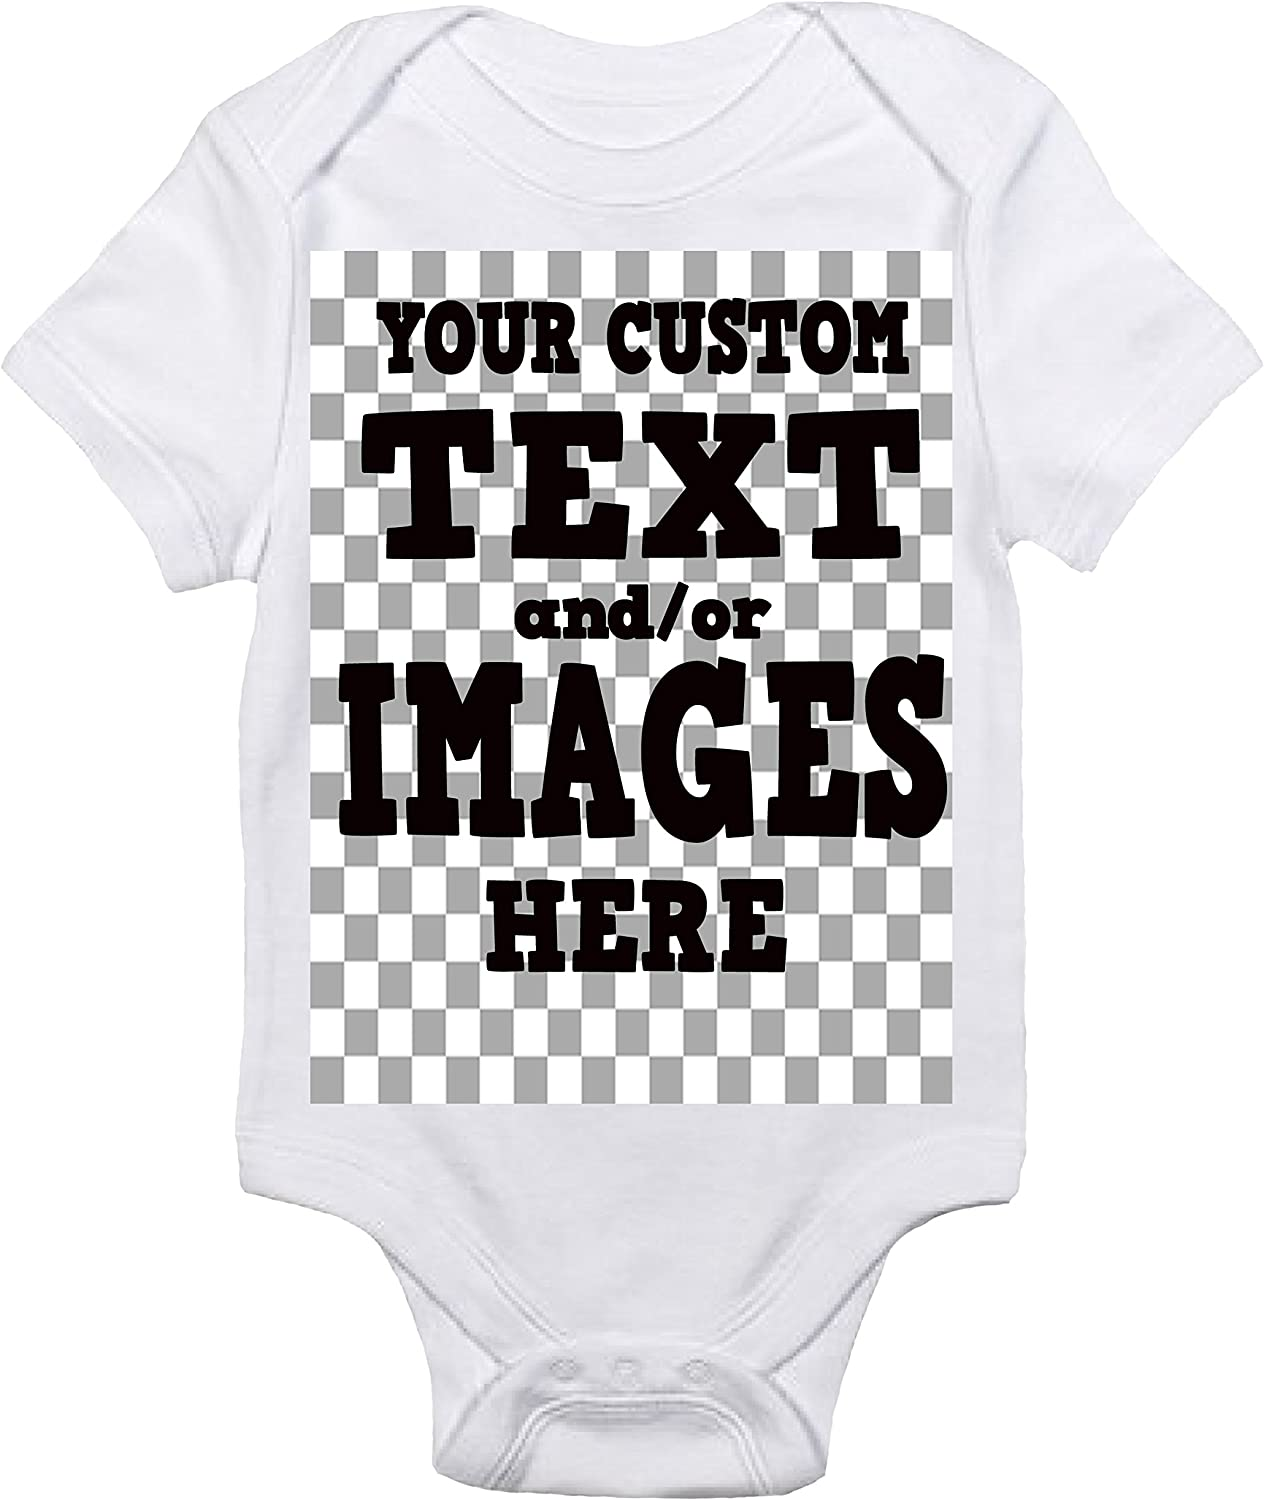 Coming home outfit Personalized Onesie Gold baby romper. Custom Bodysuit with Your Saying